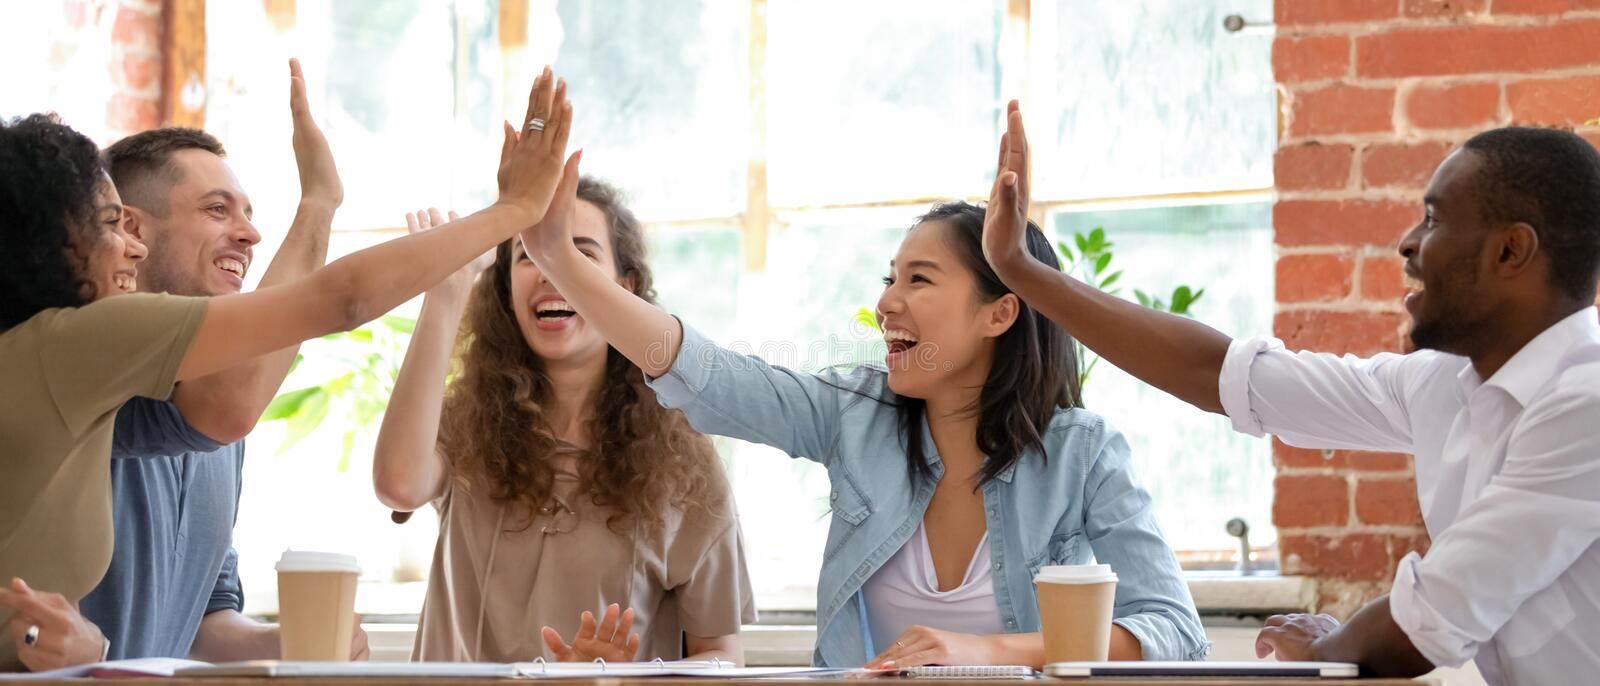 Excited employees or students feels happy giving high five stock images